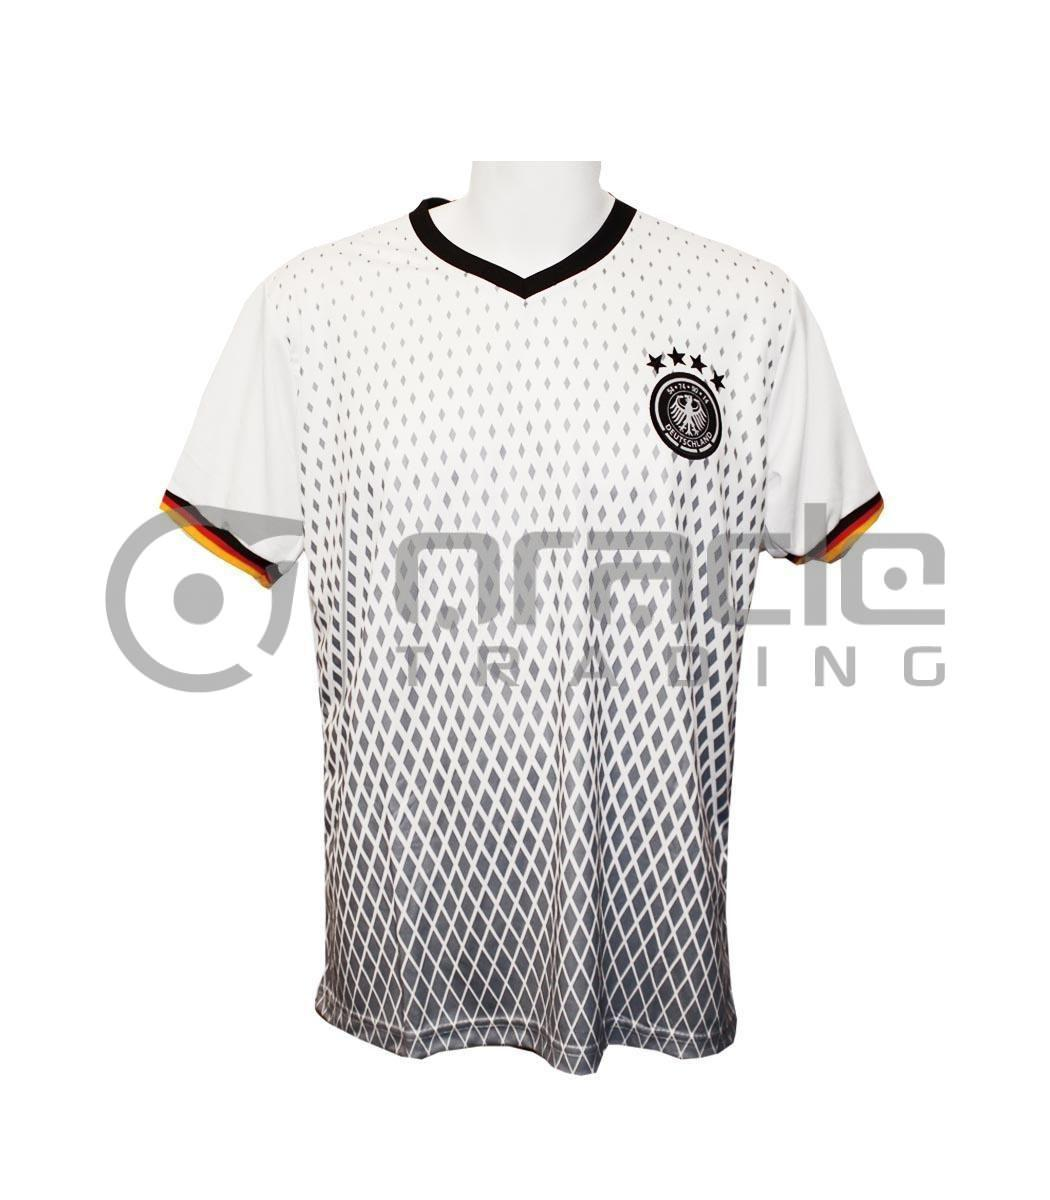 Germany Jersey - White - Adults